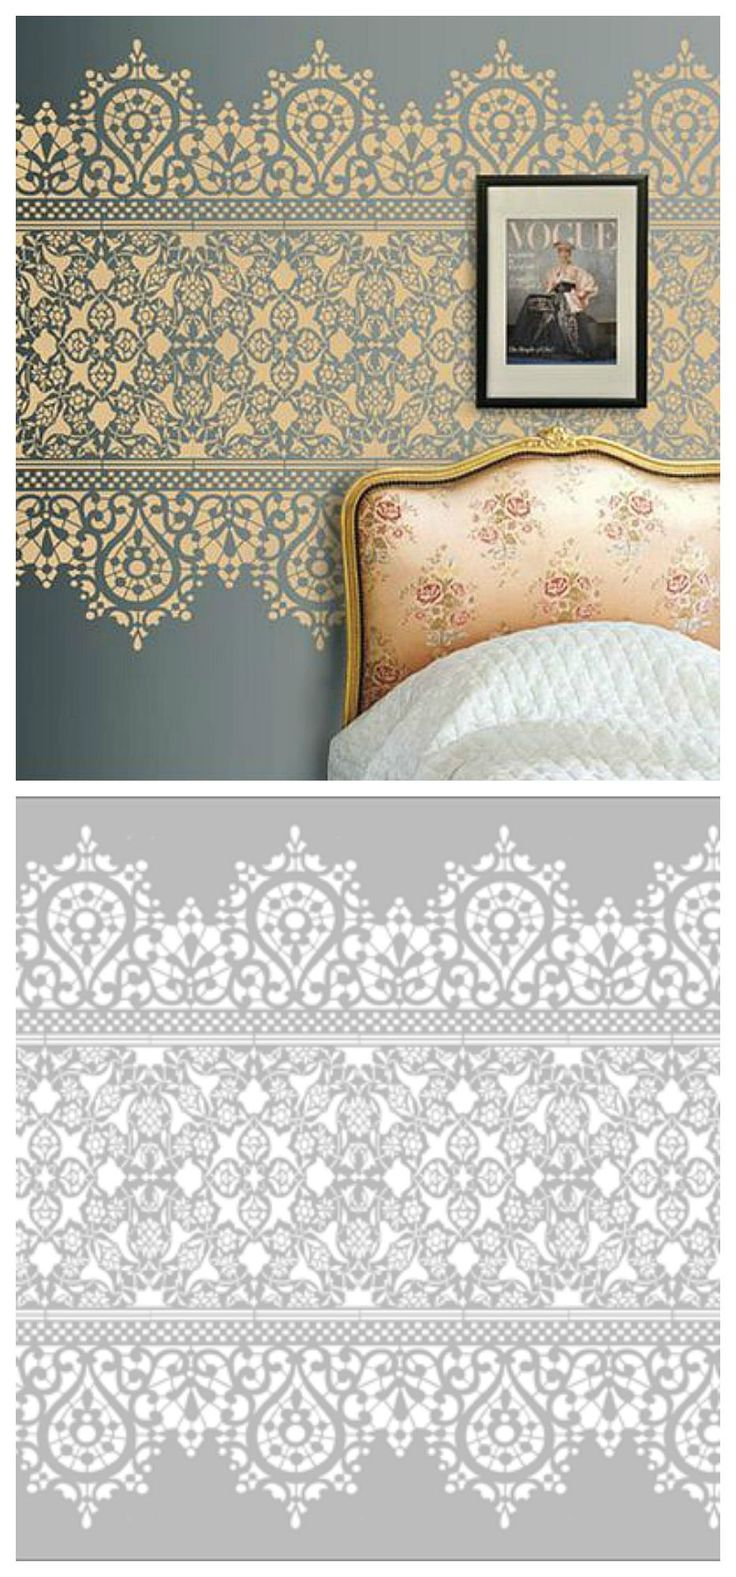 25 unique lace stencil ideas on pinterest diy lace window wall stencil lace wall stencil more amipublicfo Images